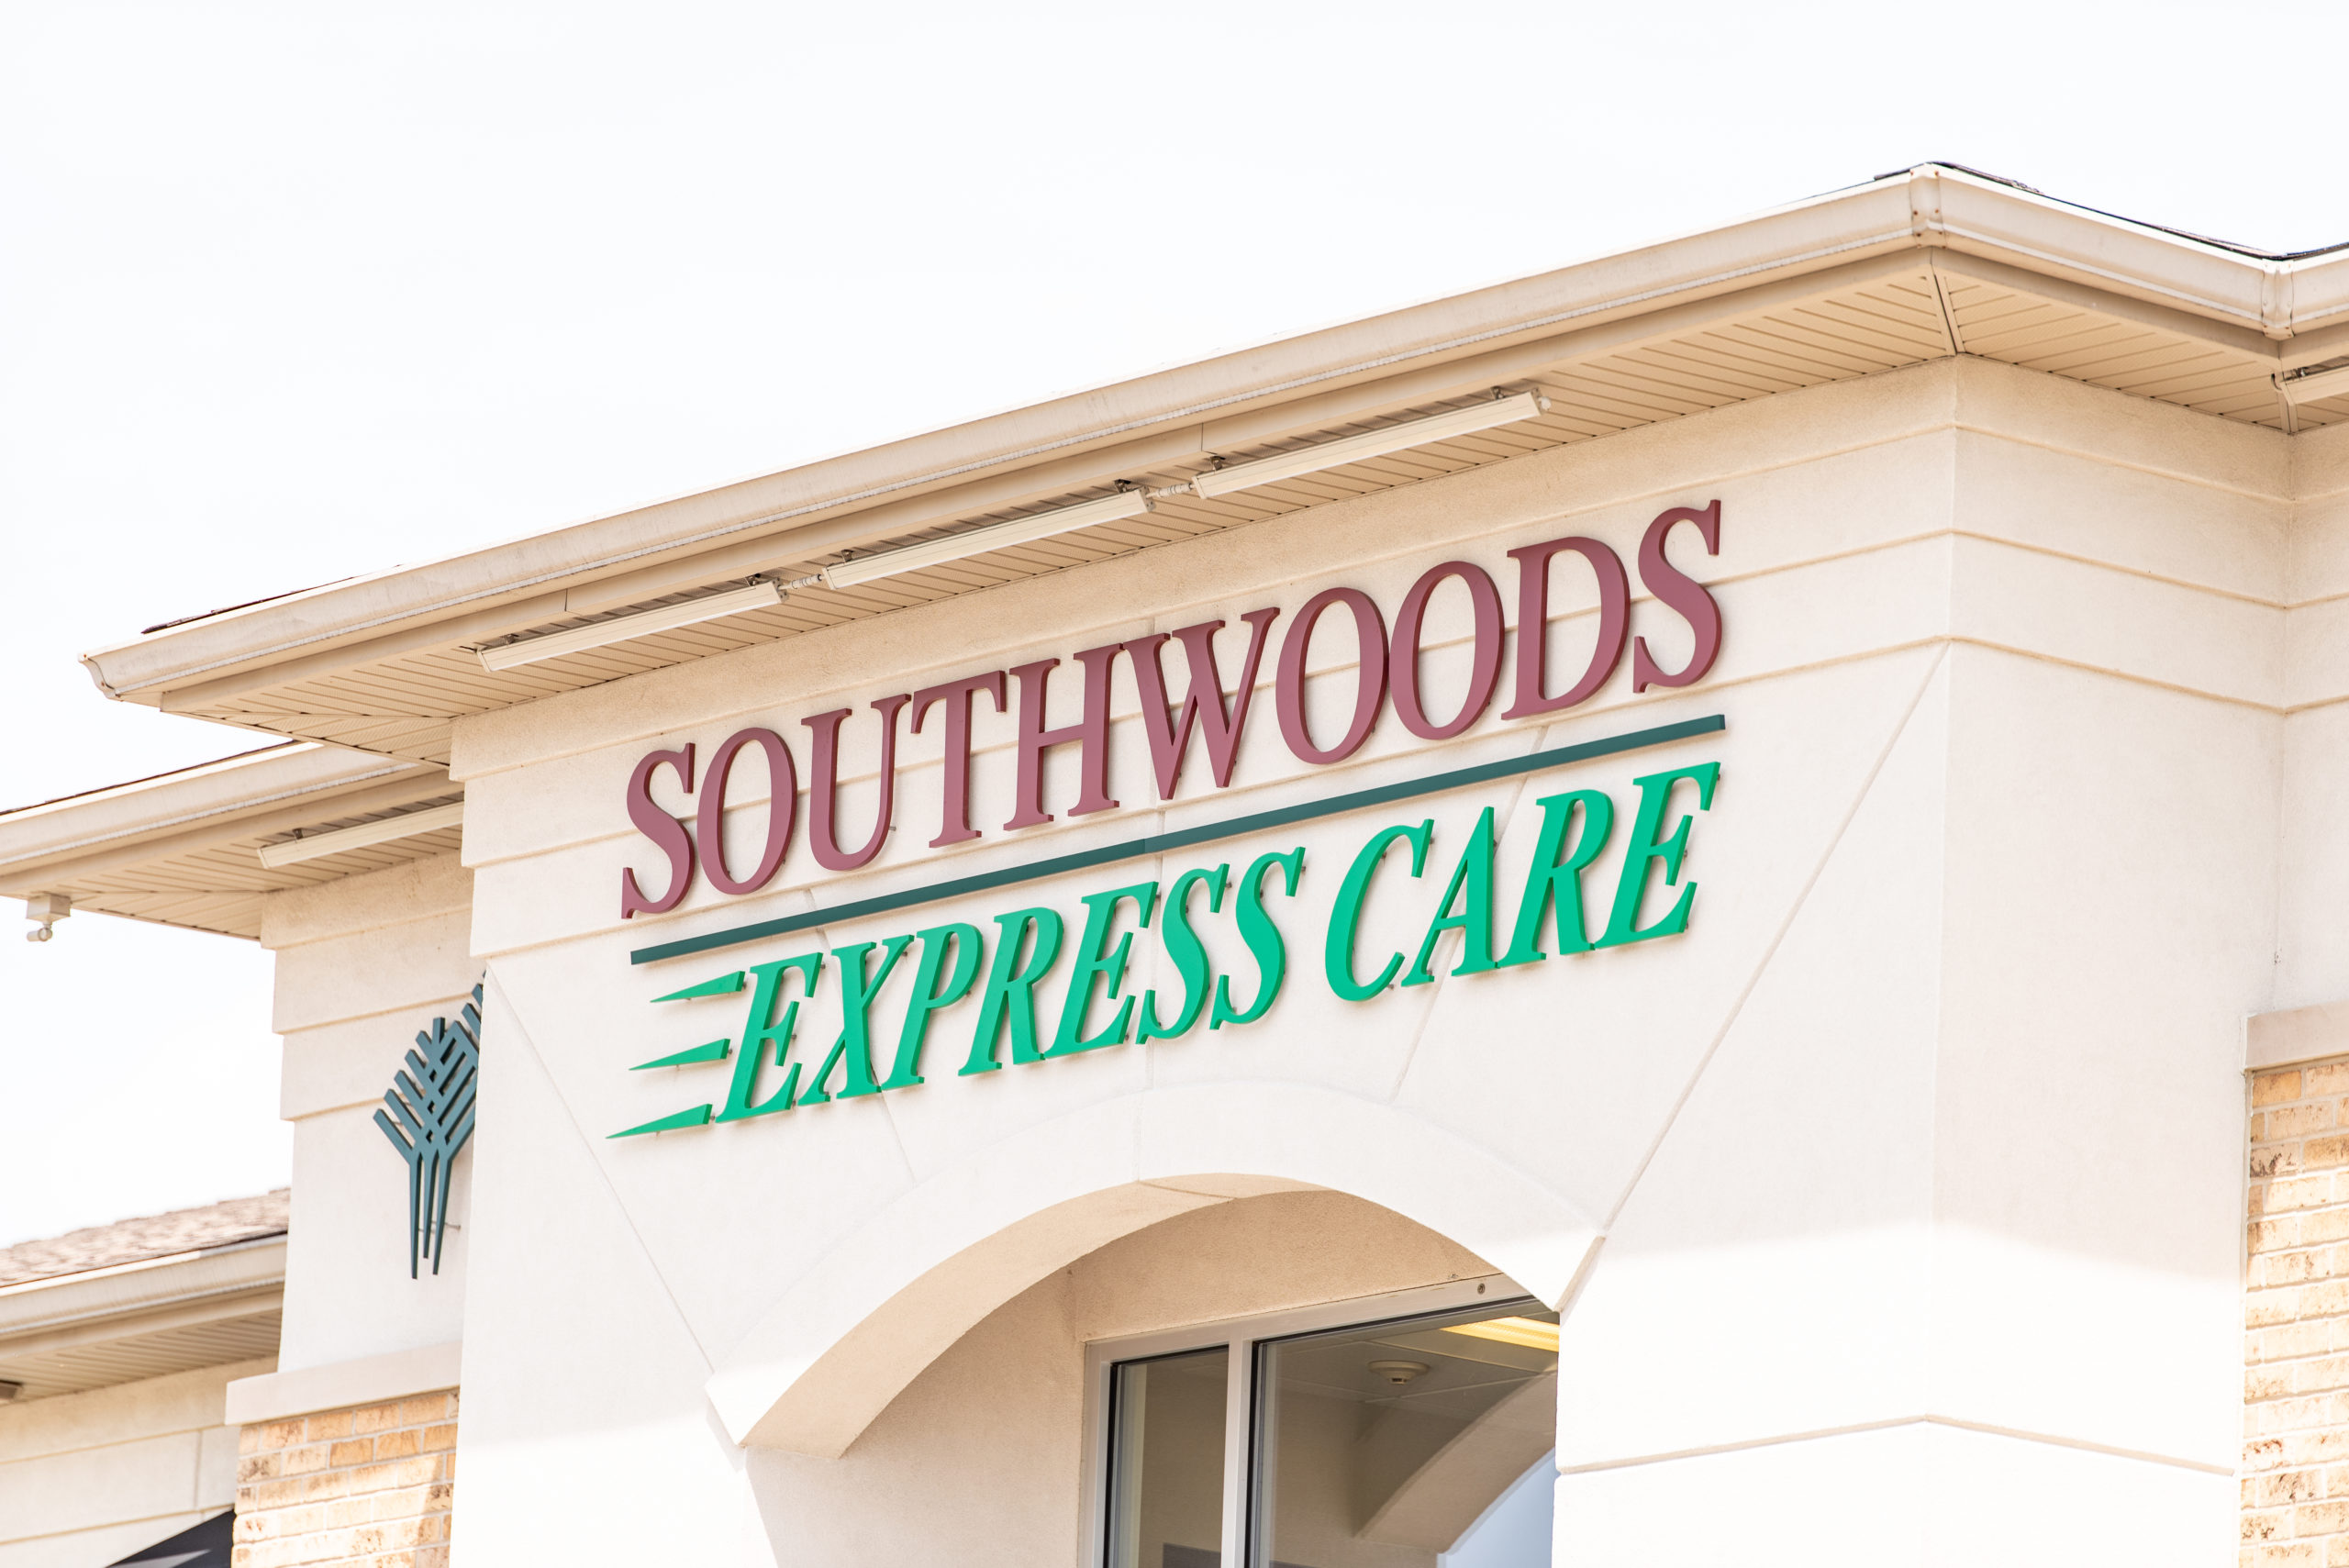 The top of the Southwoods Express Care Building that shows the logo